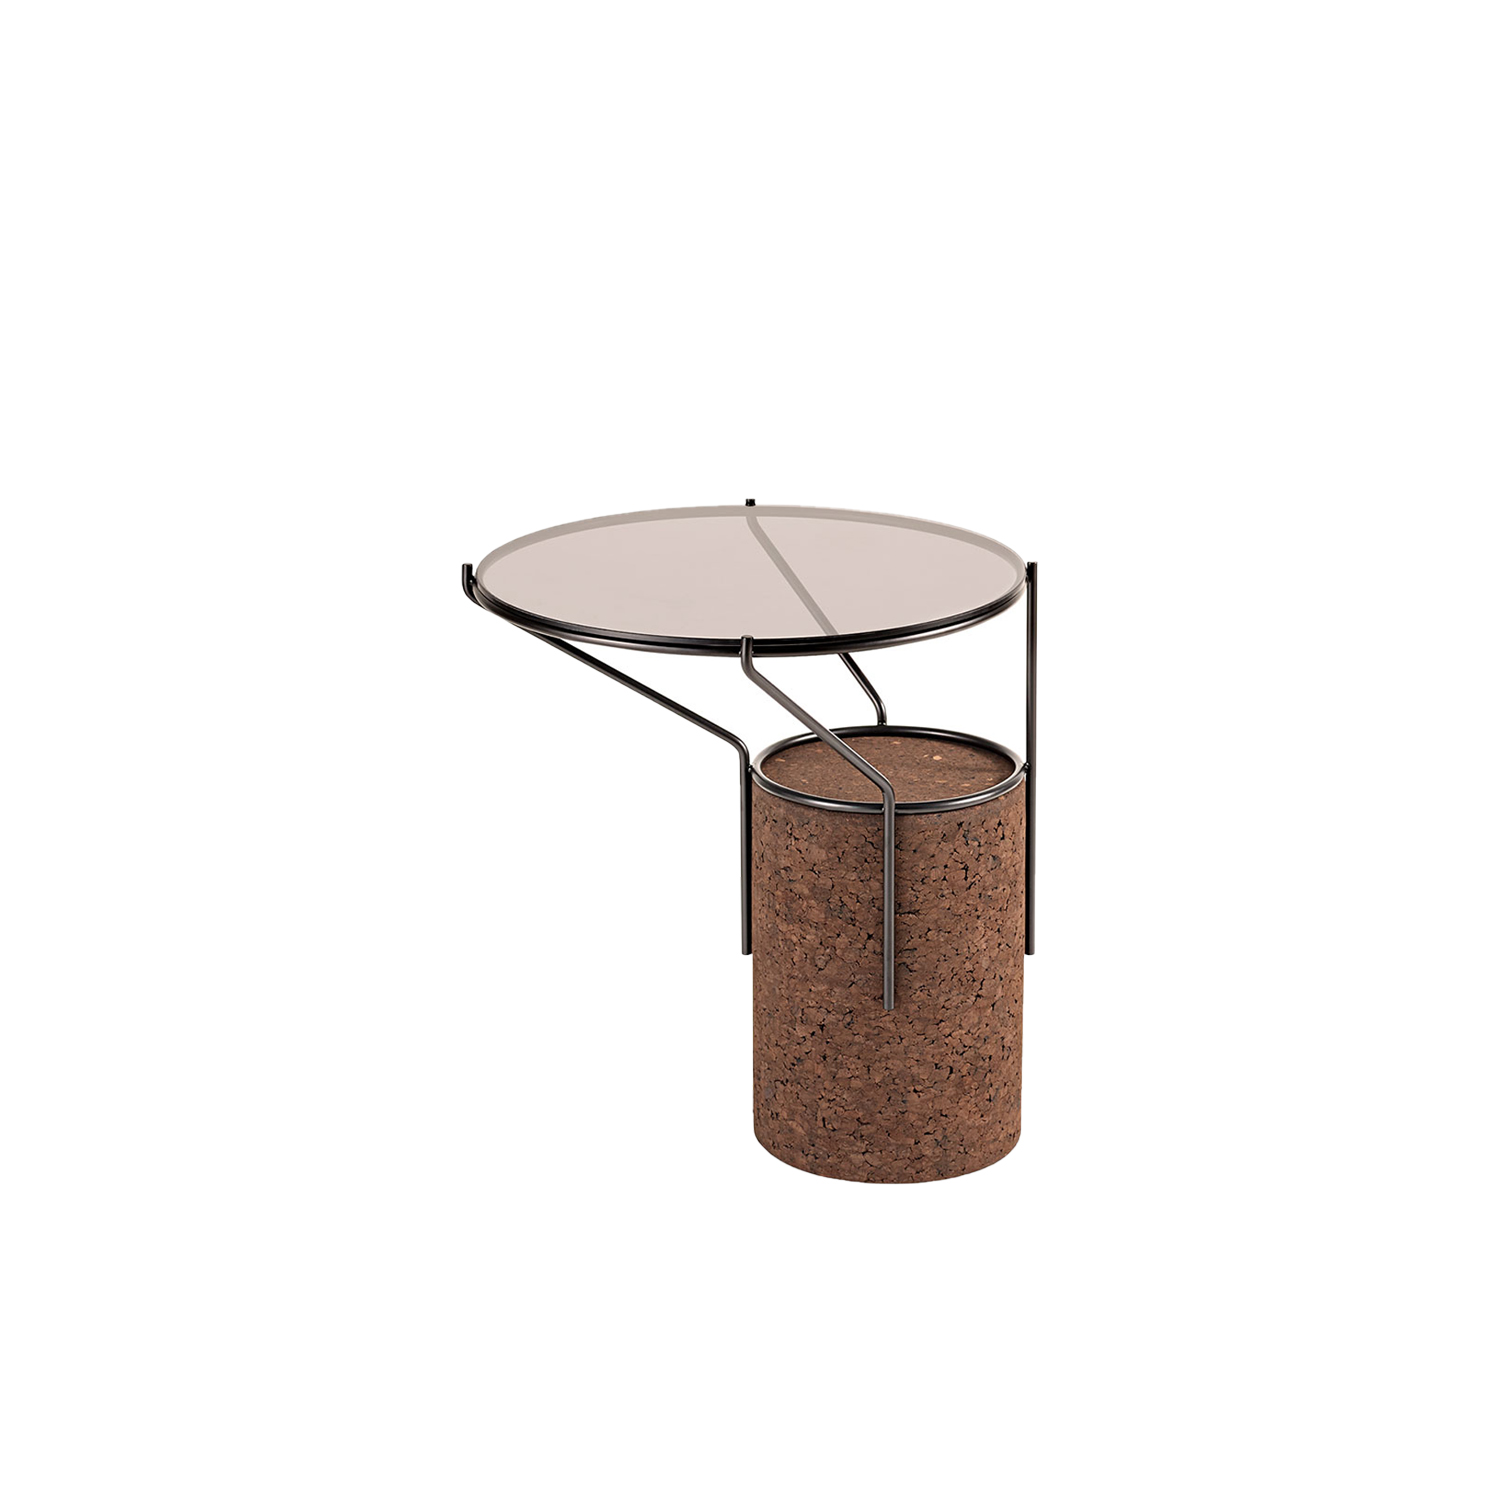 """Frame Side Table - It is only used cork of the branches (falca) for the manufacture of cork granules. These are block clusters in autoclave, being 100% natural process, without use of additives. Technology, developed by Sofalca, consists of injecting water vapour through the pallets that will expand and agglutinate with the resins of the cork itself. This """"cooking"""" gives also dark colour to the agglomerated cork, like chocolate. In the production of steam I used biomass, obtained on milling and cleaning the falca, what makes it truly ecological production and without waste, 95% energy self-sufficient. As a super-material, cork offers so many advantages, because in addition to its excellent thermic, acoustic insulation and anti vibration characteristic, it is also a CO2 sink playing a key-role in the environment. 